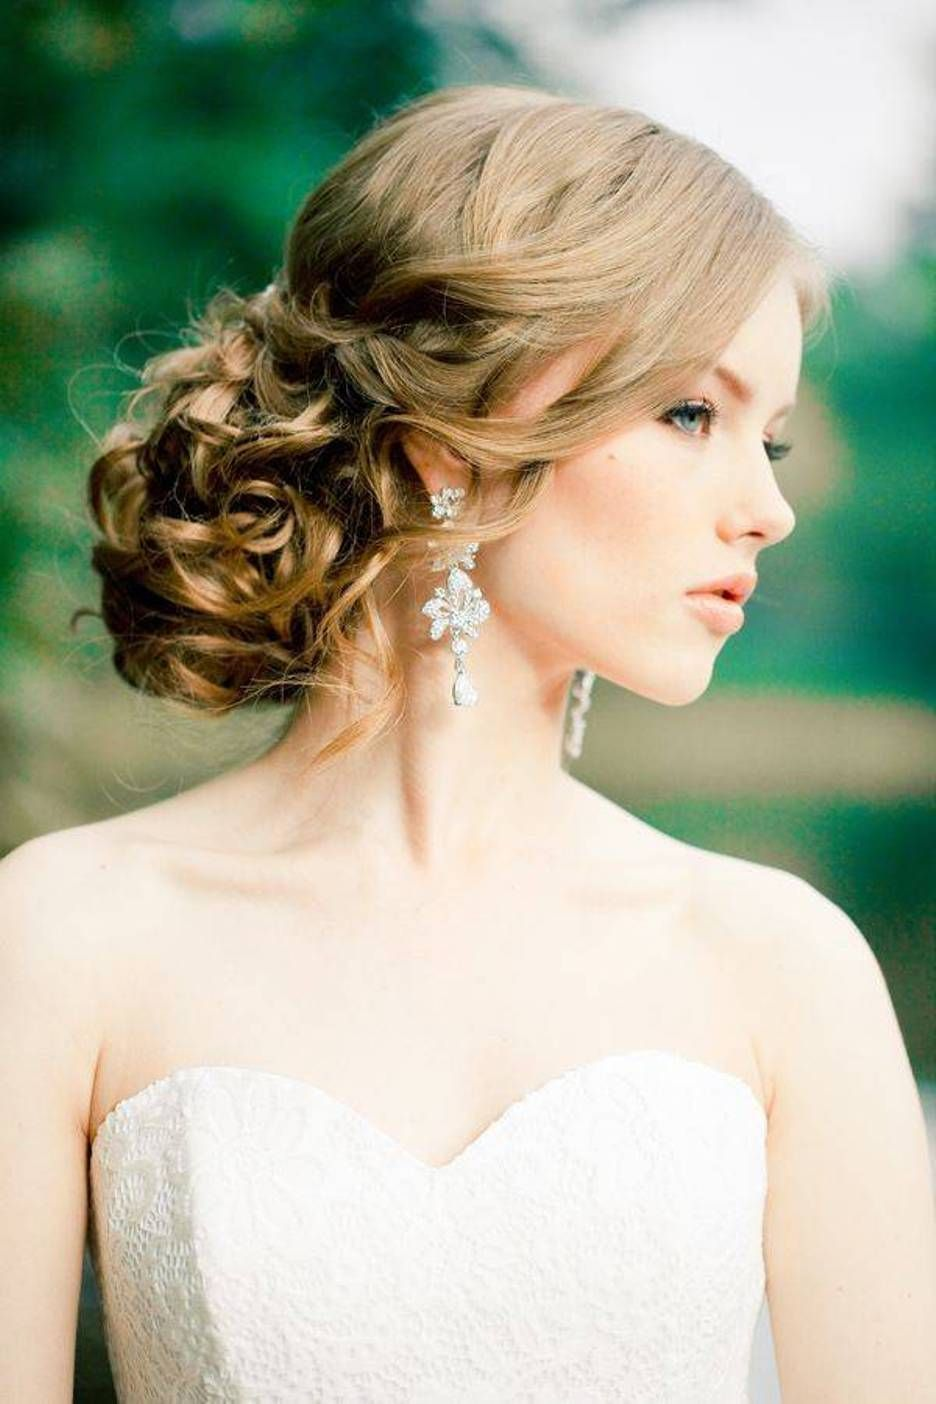 17+ exceptional latest women hairstyles ideas | updos